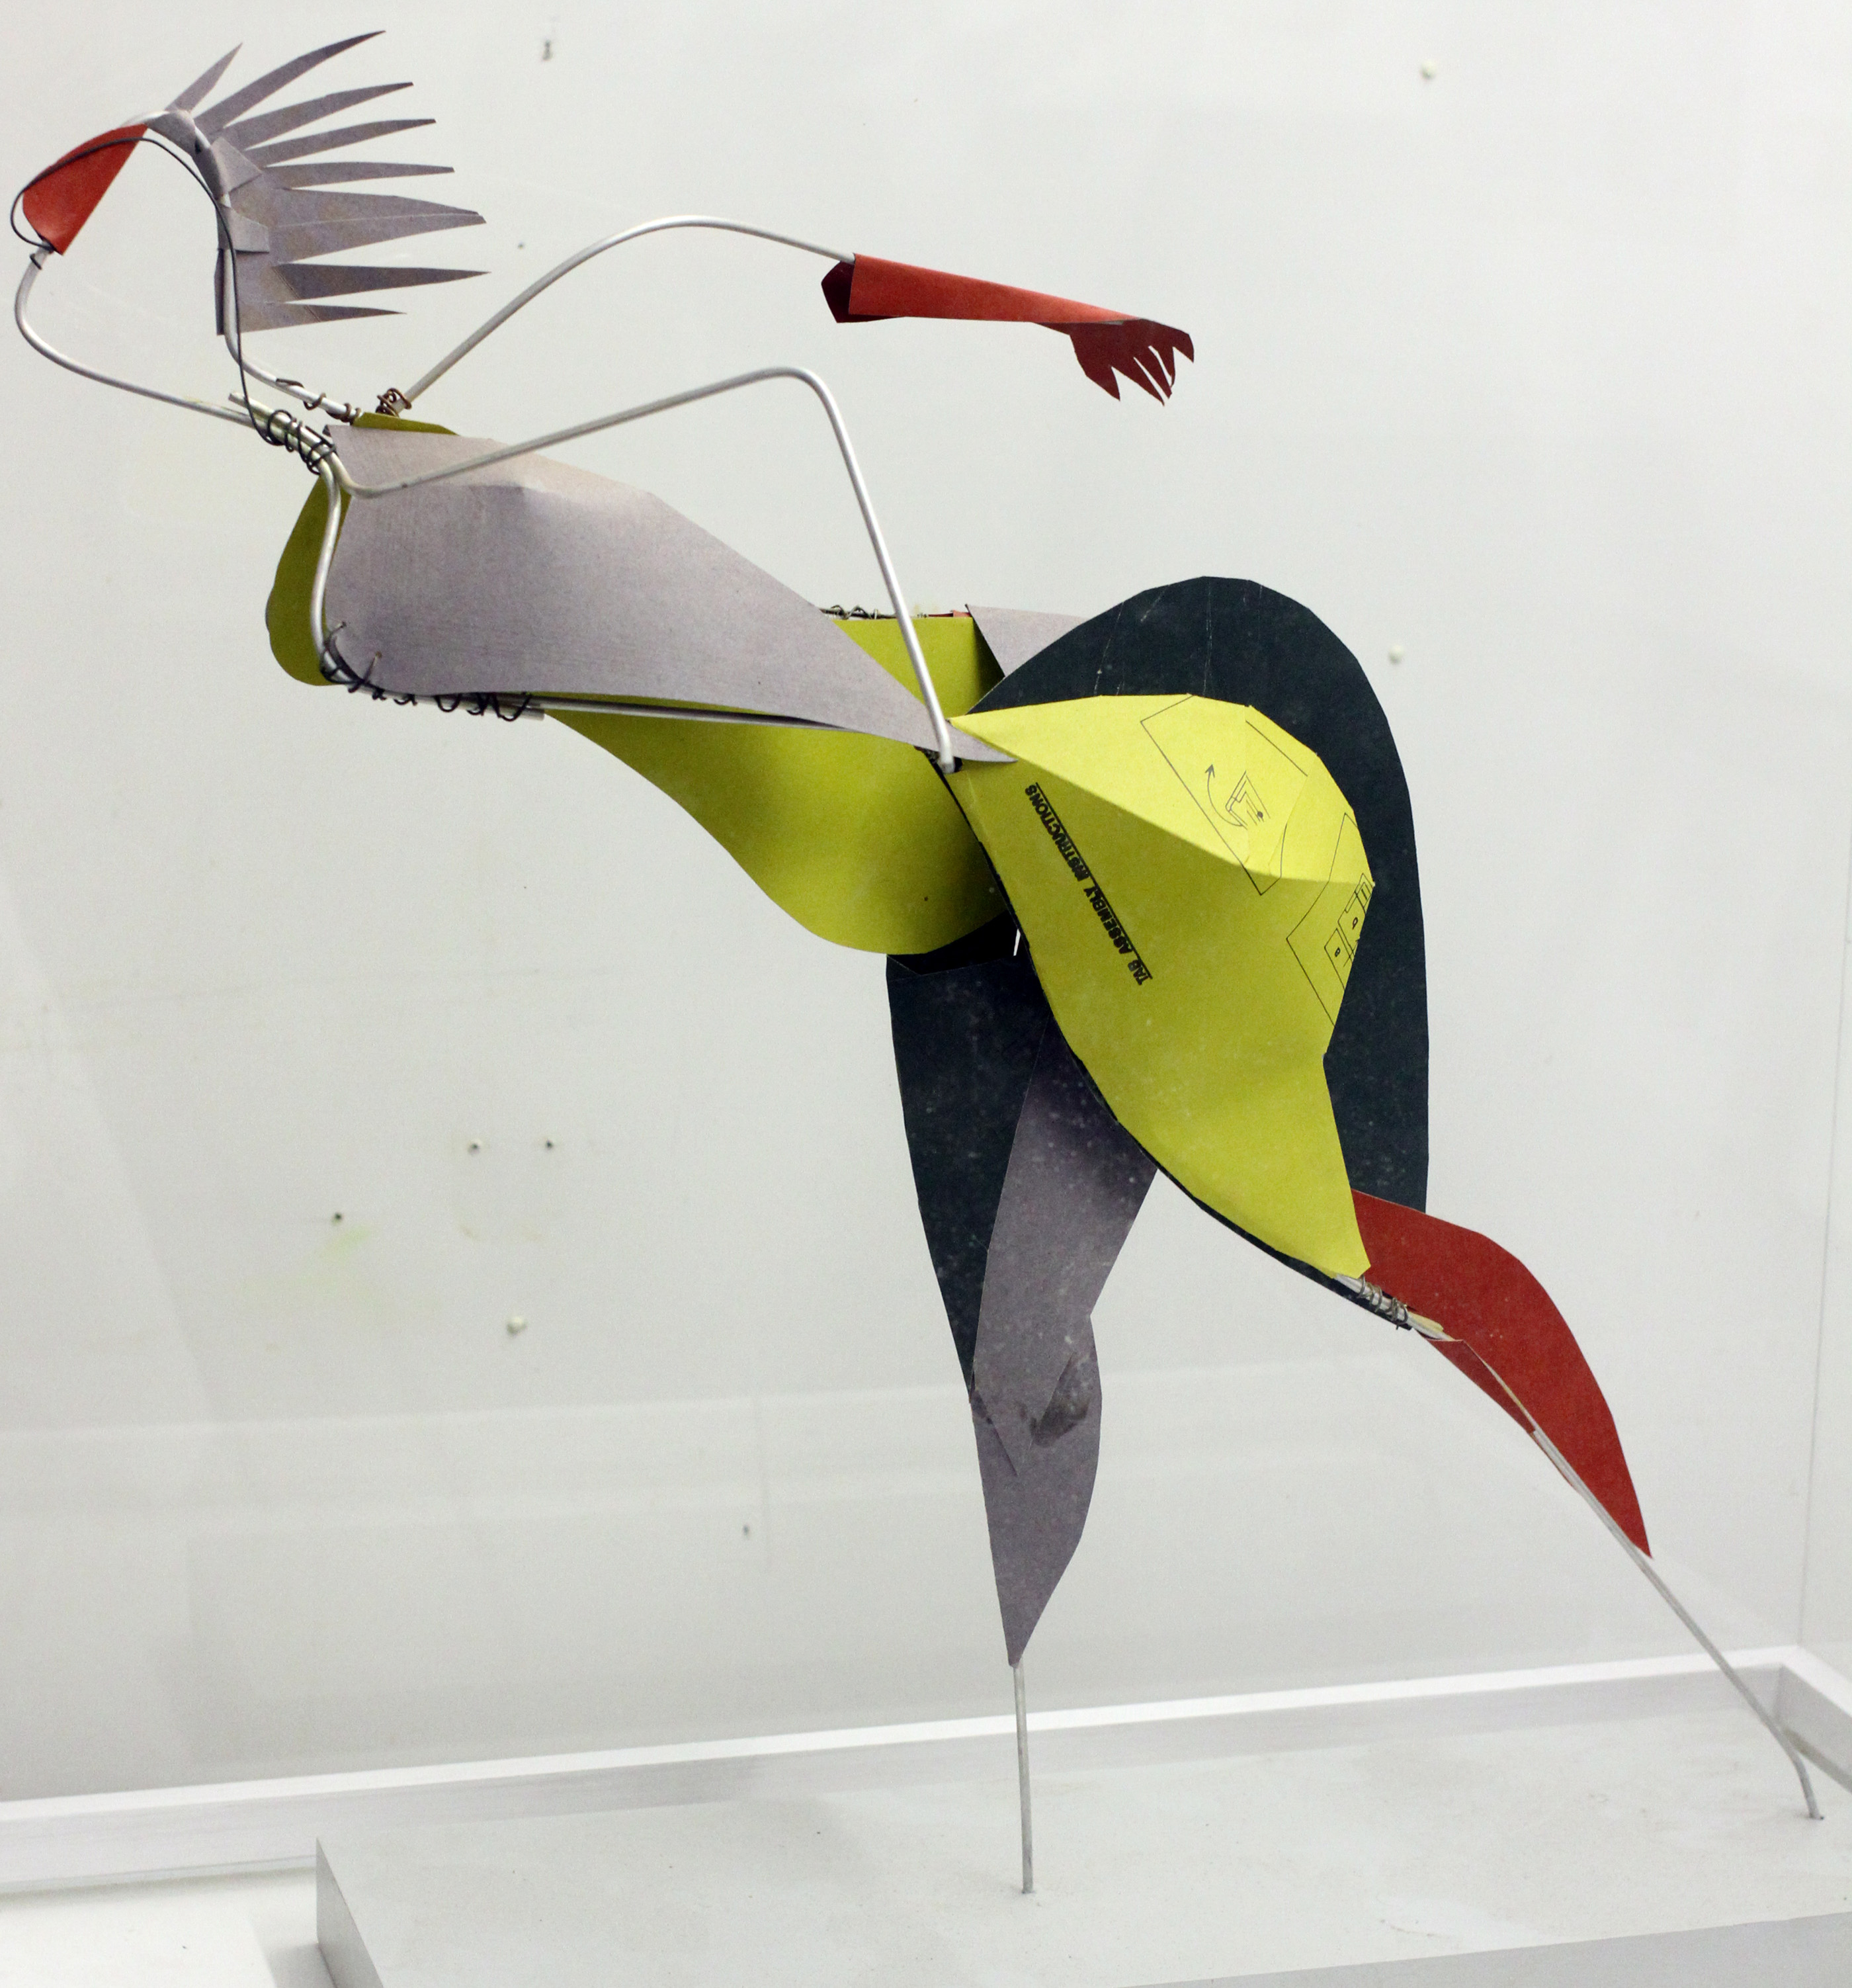 Run, card and wire construction, 2010